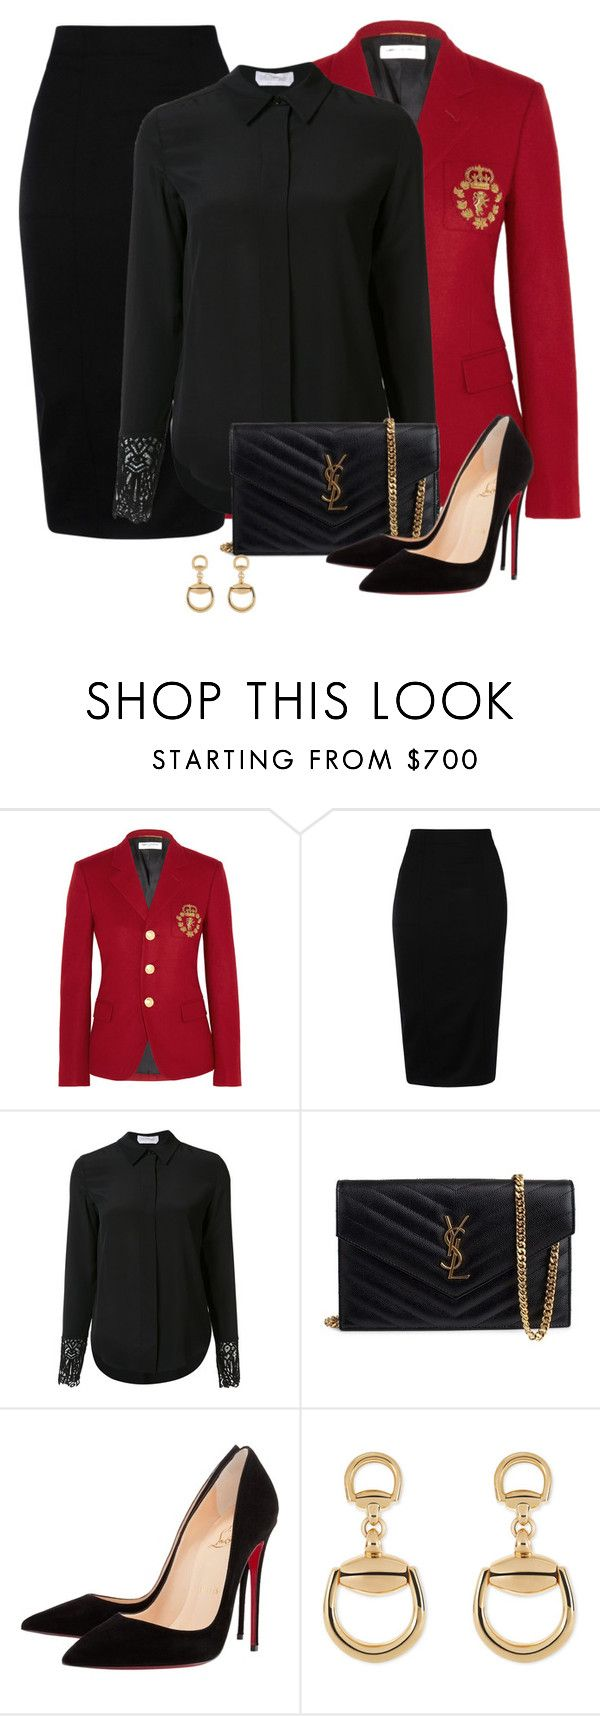 """""""Untitled #355"""" by tijana89 ❤ liked on Polyvore featuring Yves Saint Laurent, Olympia Le-Tan, Chloé, Christian Louboutin and Gucci"""